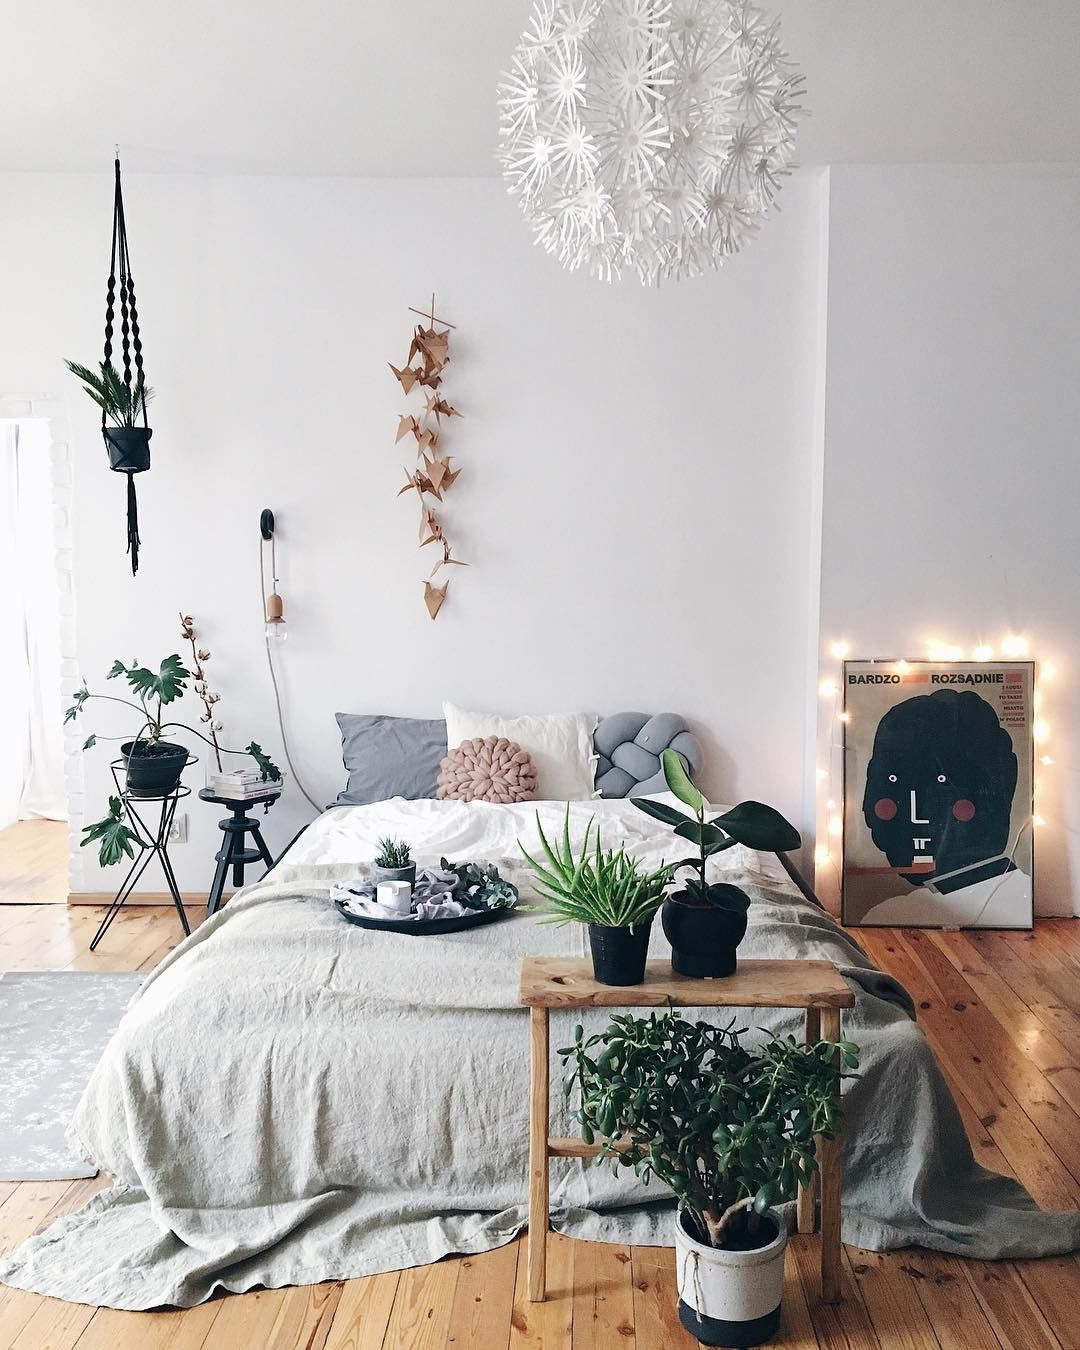 Dagmara fajks roomor instagram interiors pinterest for Minimalist living bedroom